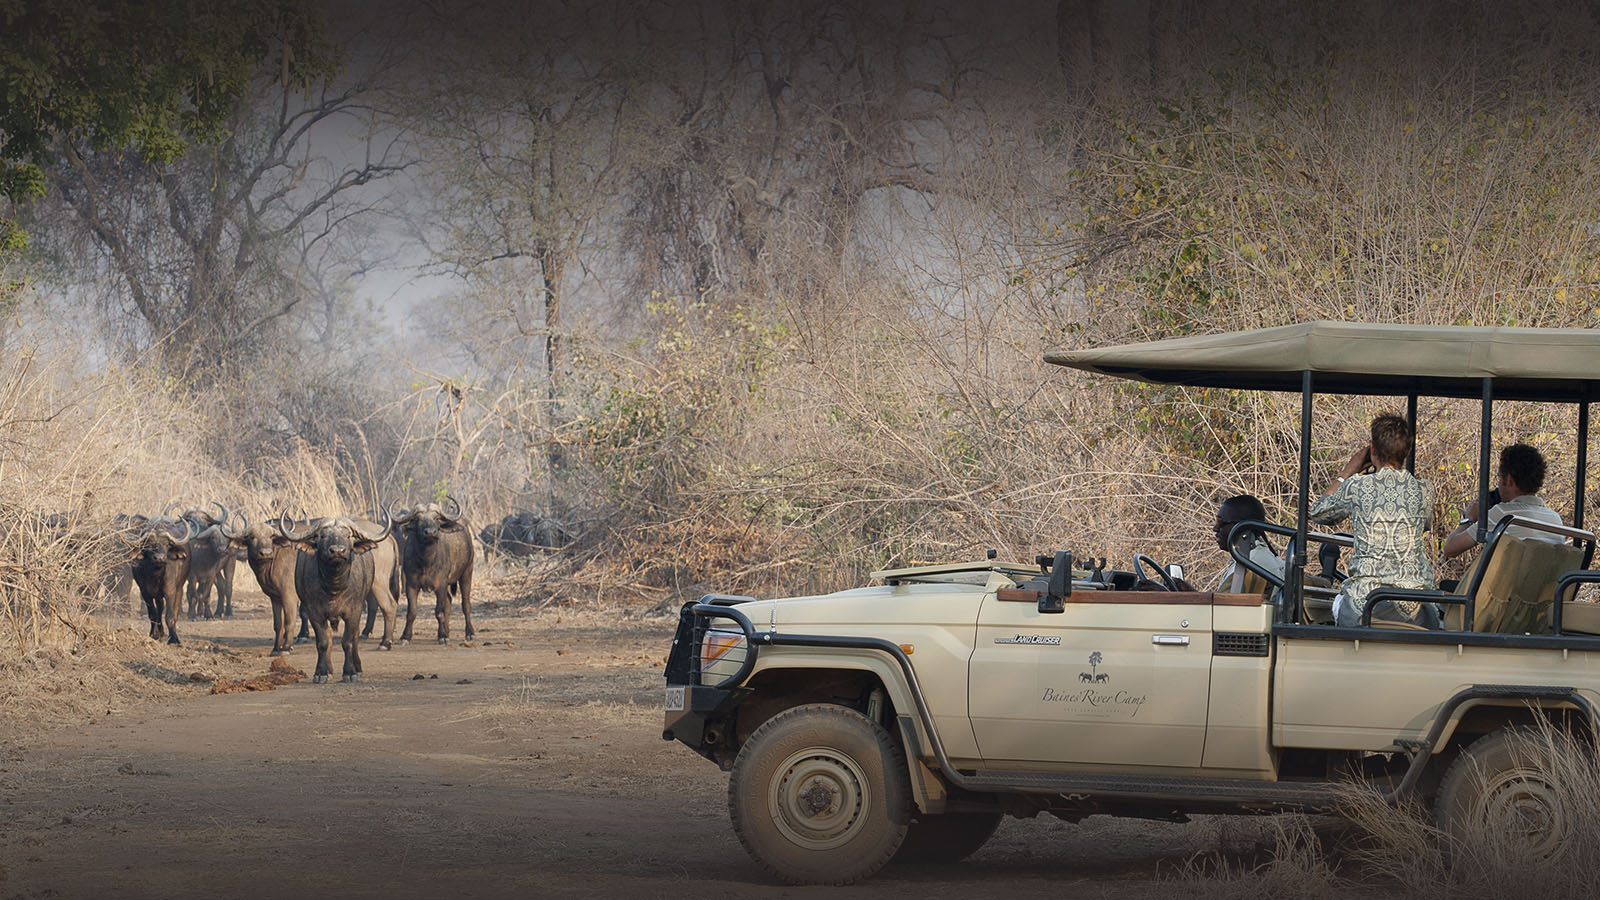 flashpacking-beach-bush-zambia-in-style-safari-packages-tours-baines